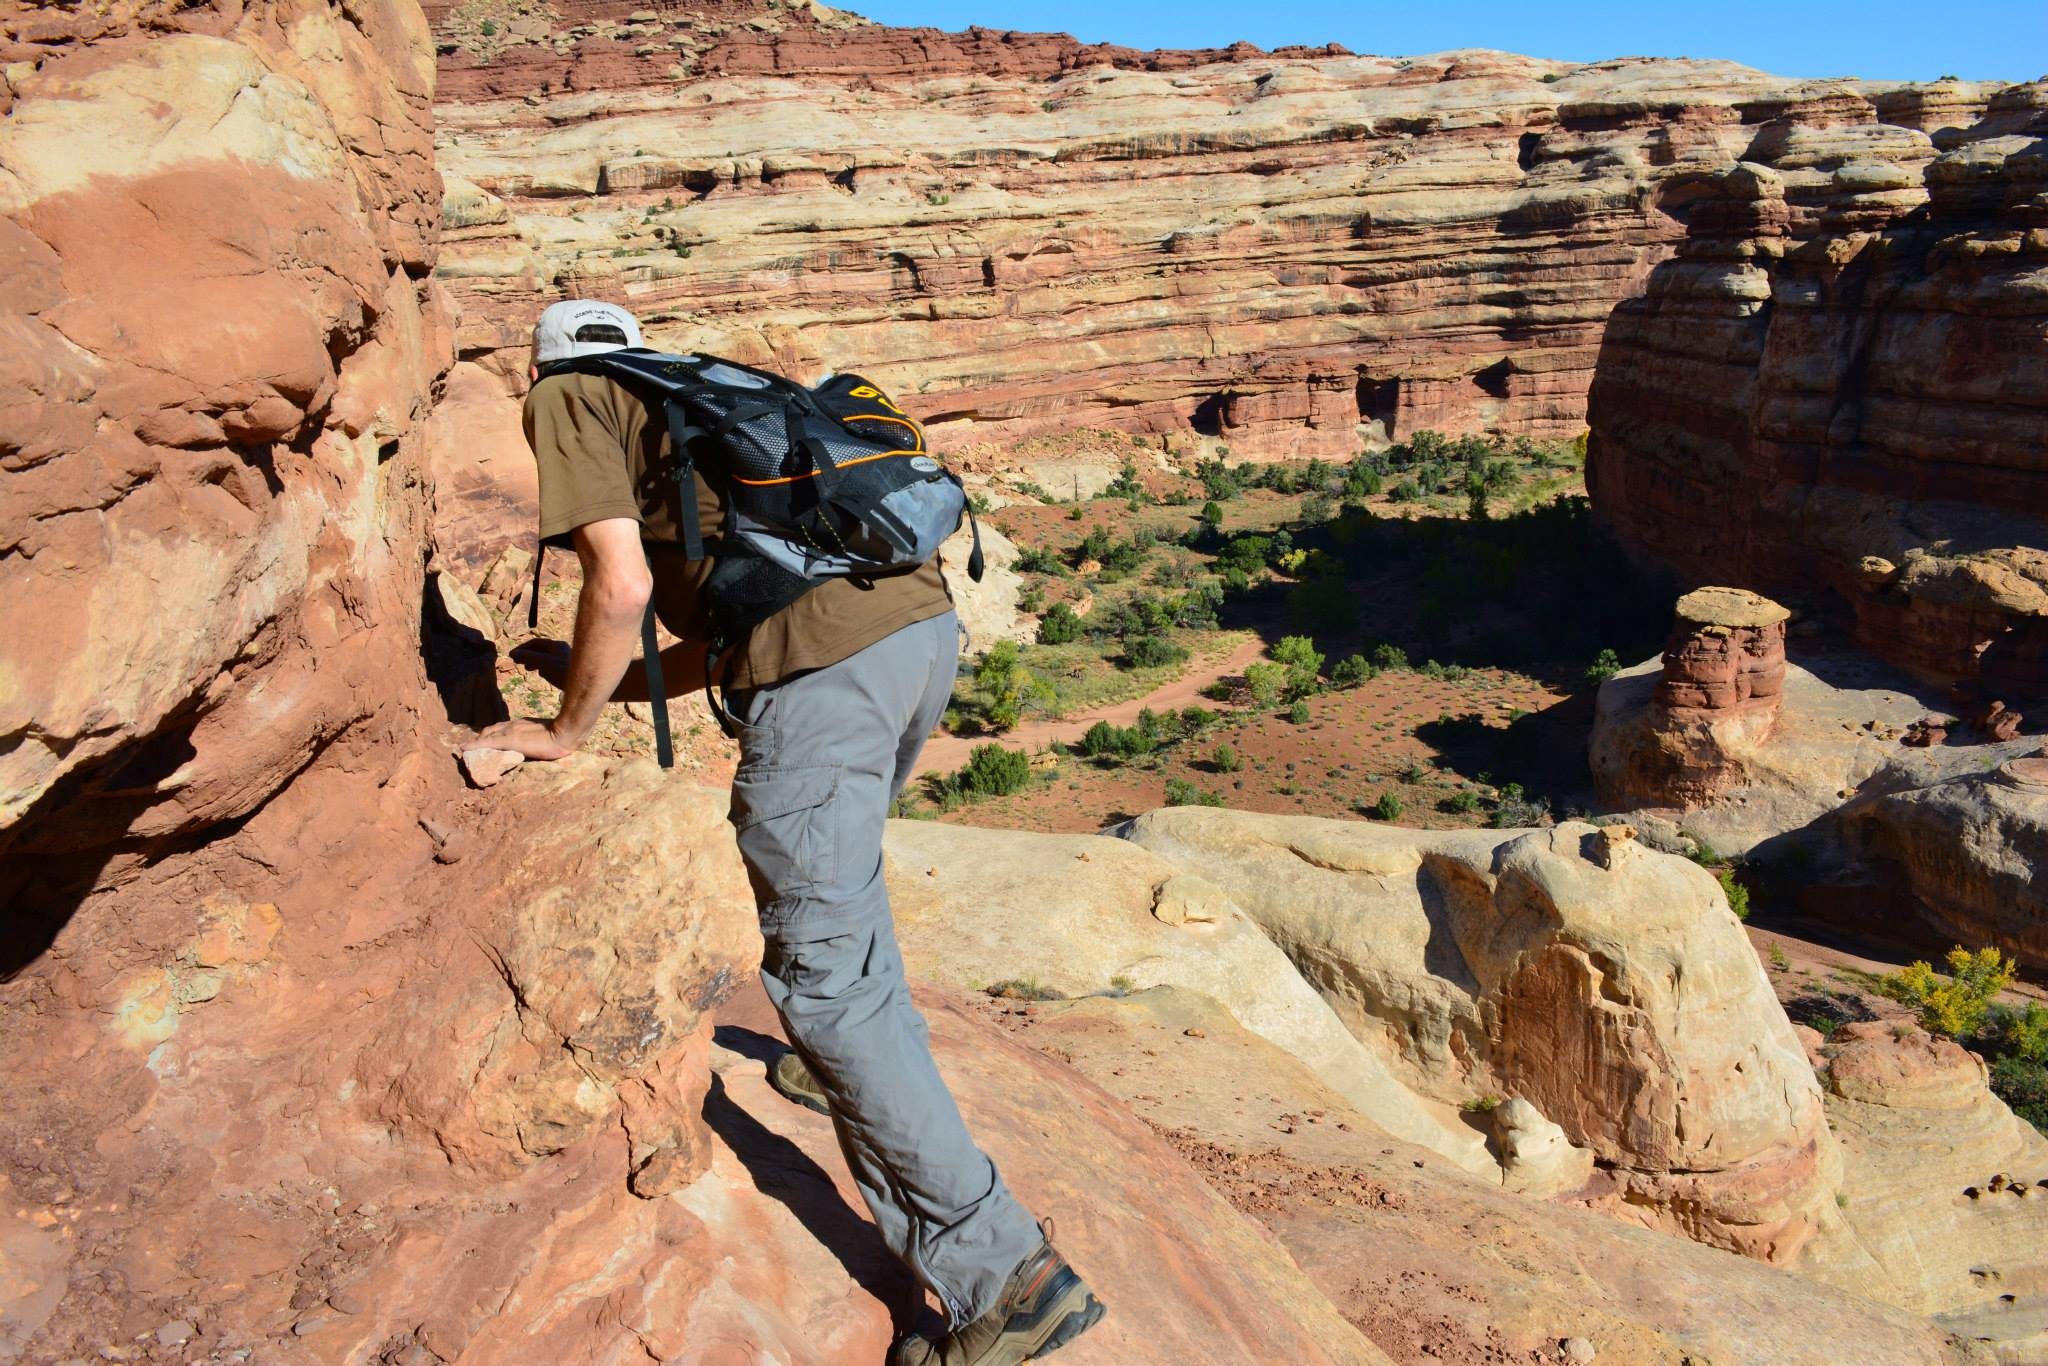 Hiking in The Maze within Canyonlands National Park